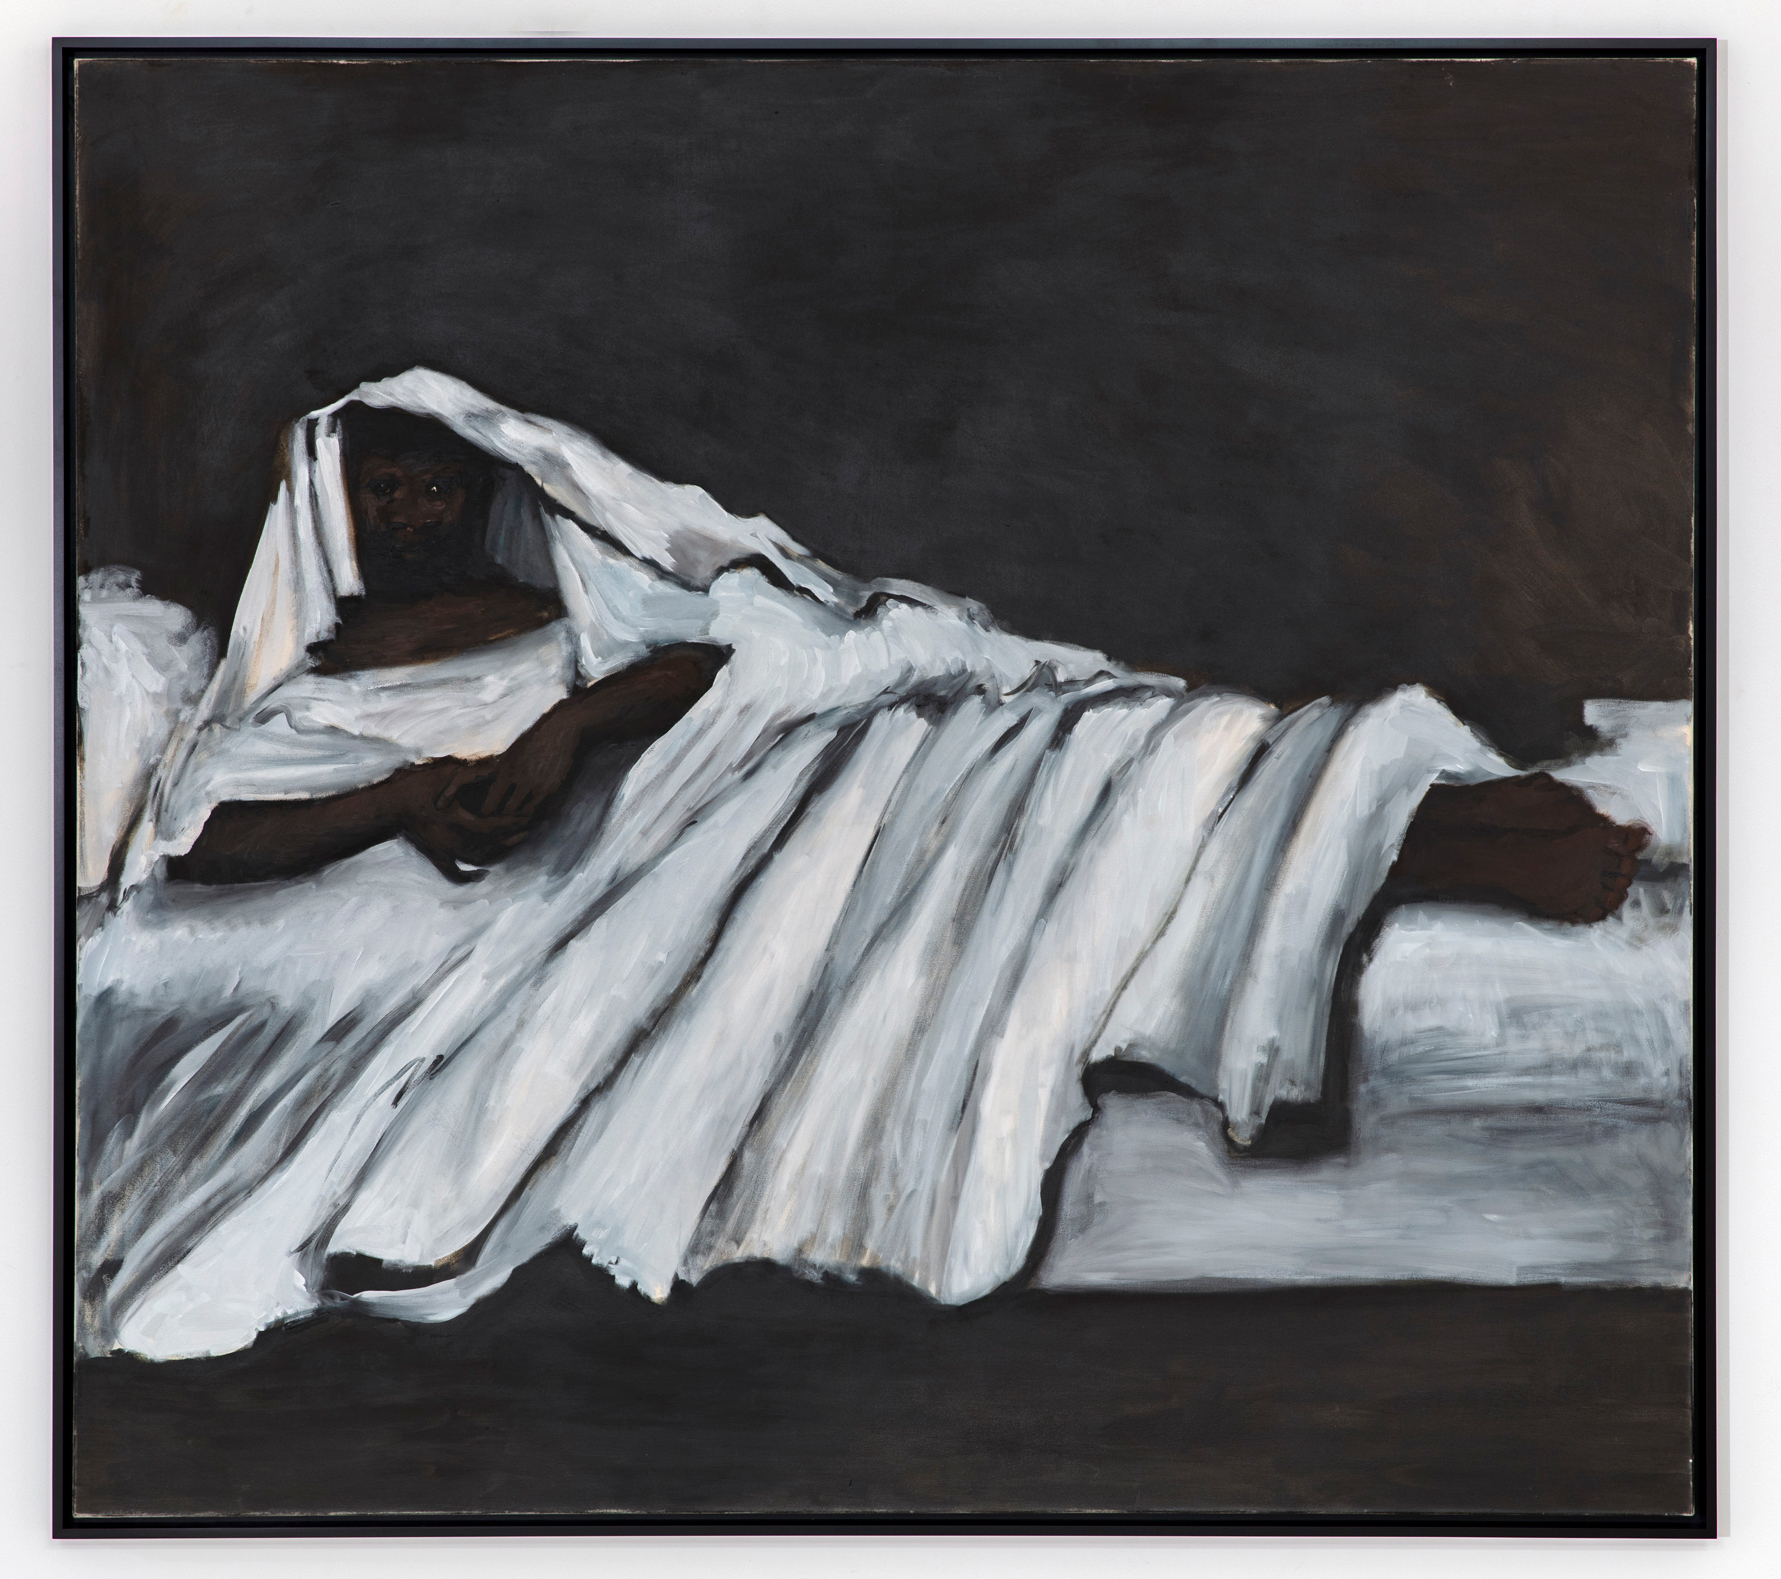 Lynette Yiadom Boakye, Kasbah, 2008, Fredriksen collection